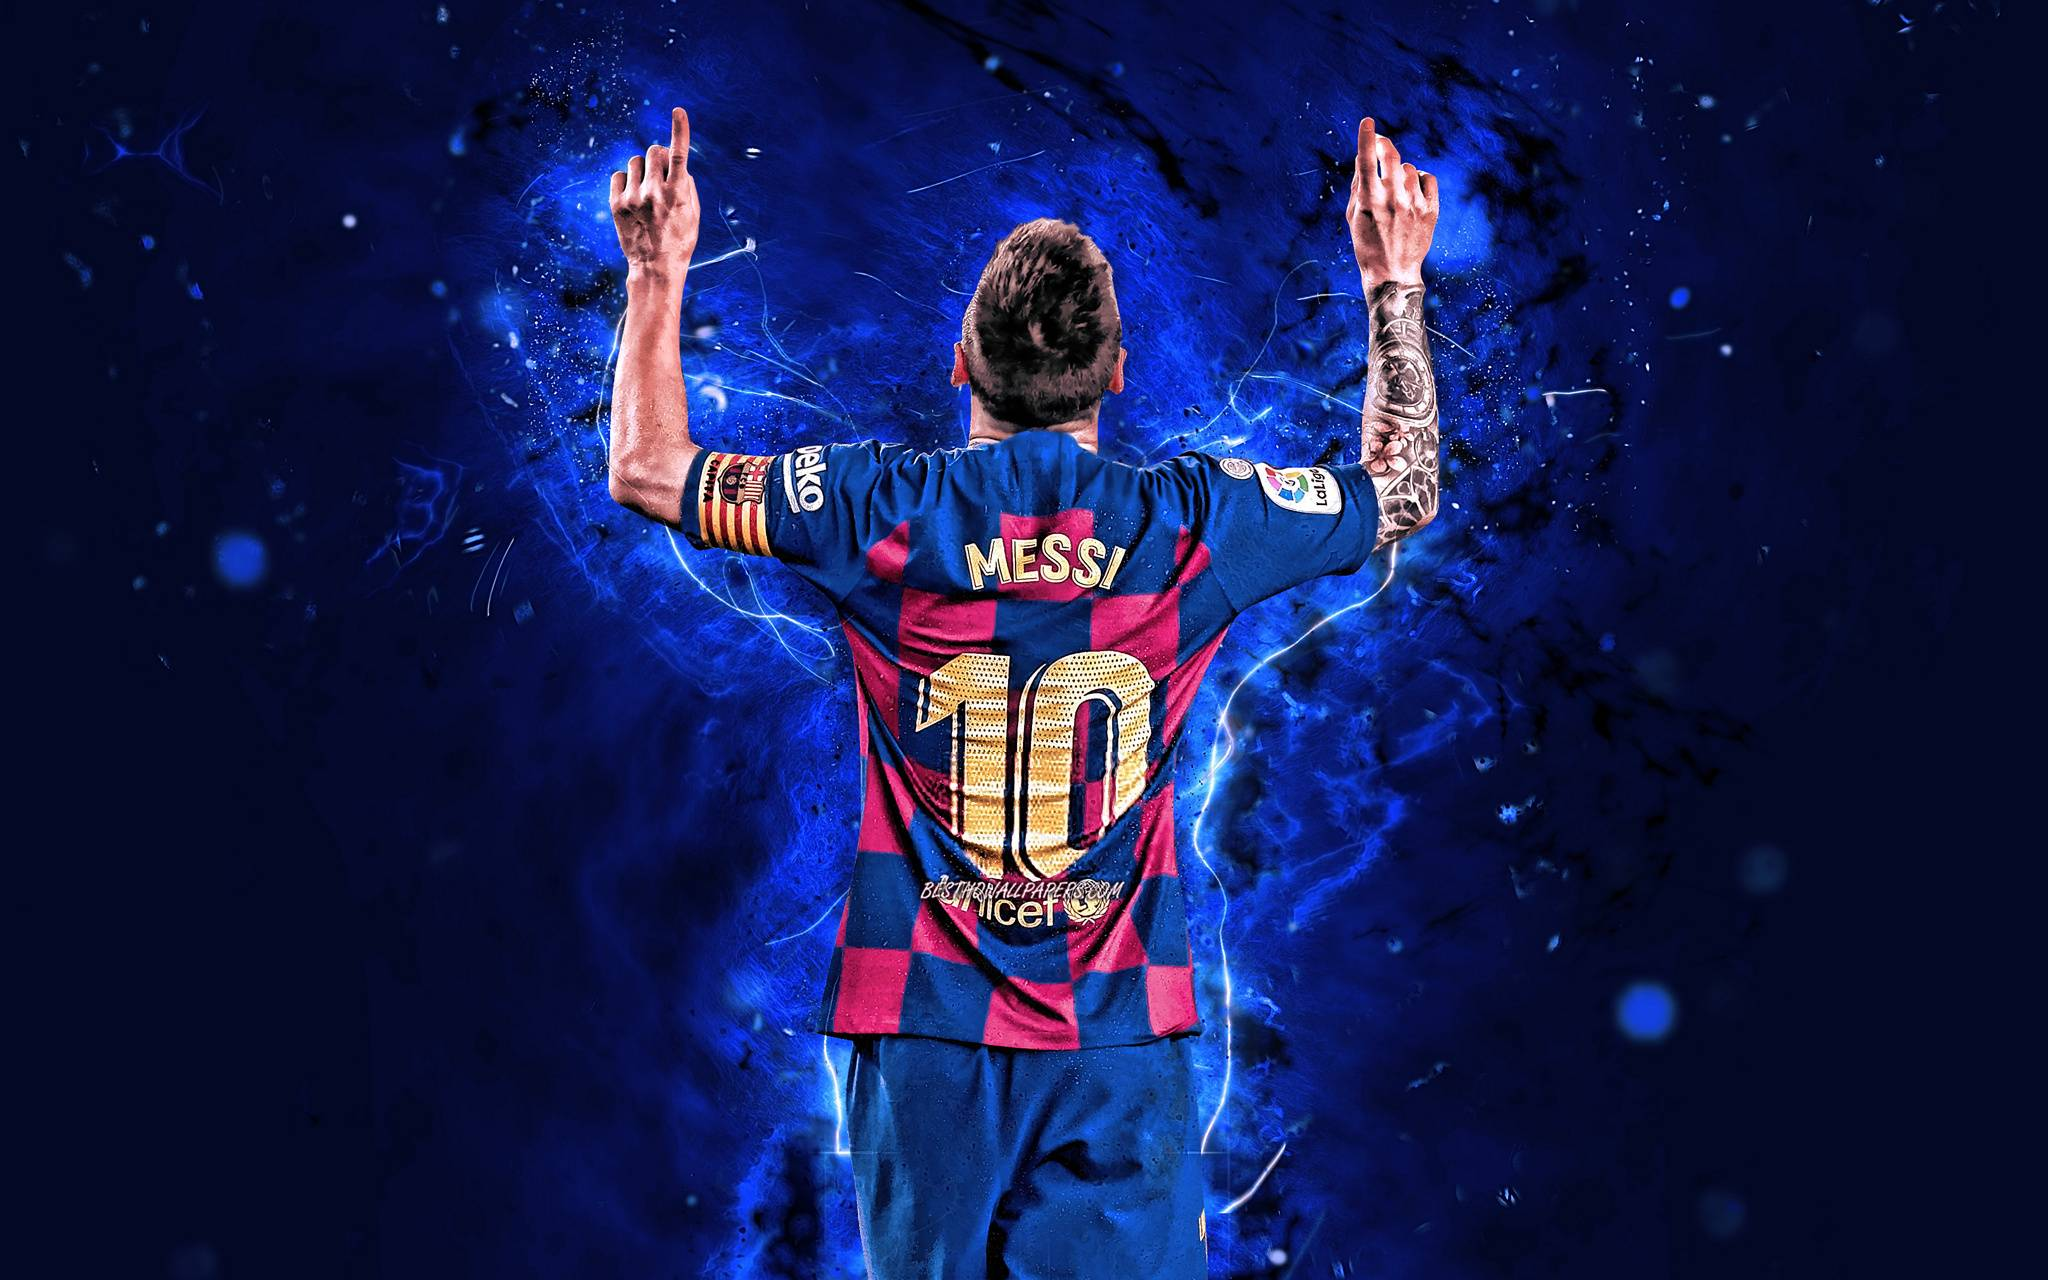 2020 Full Hd Messi Wallpaper Iphone